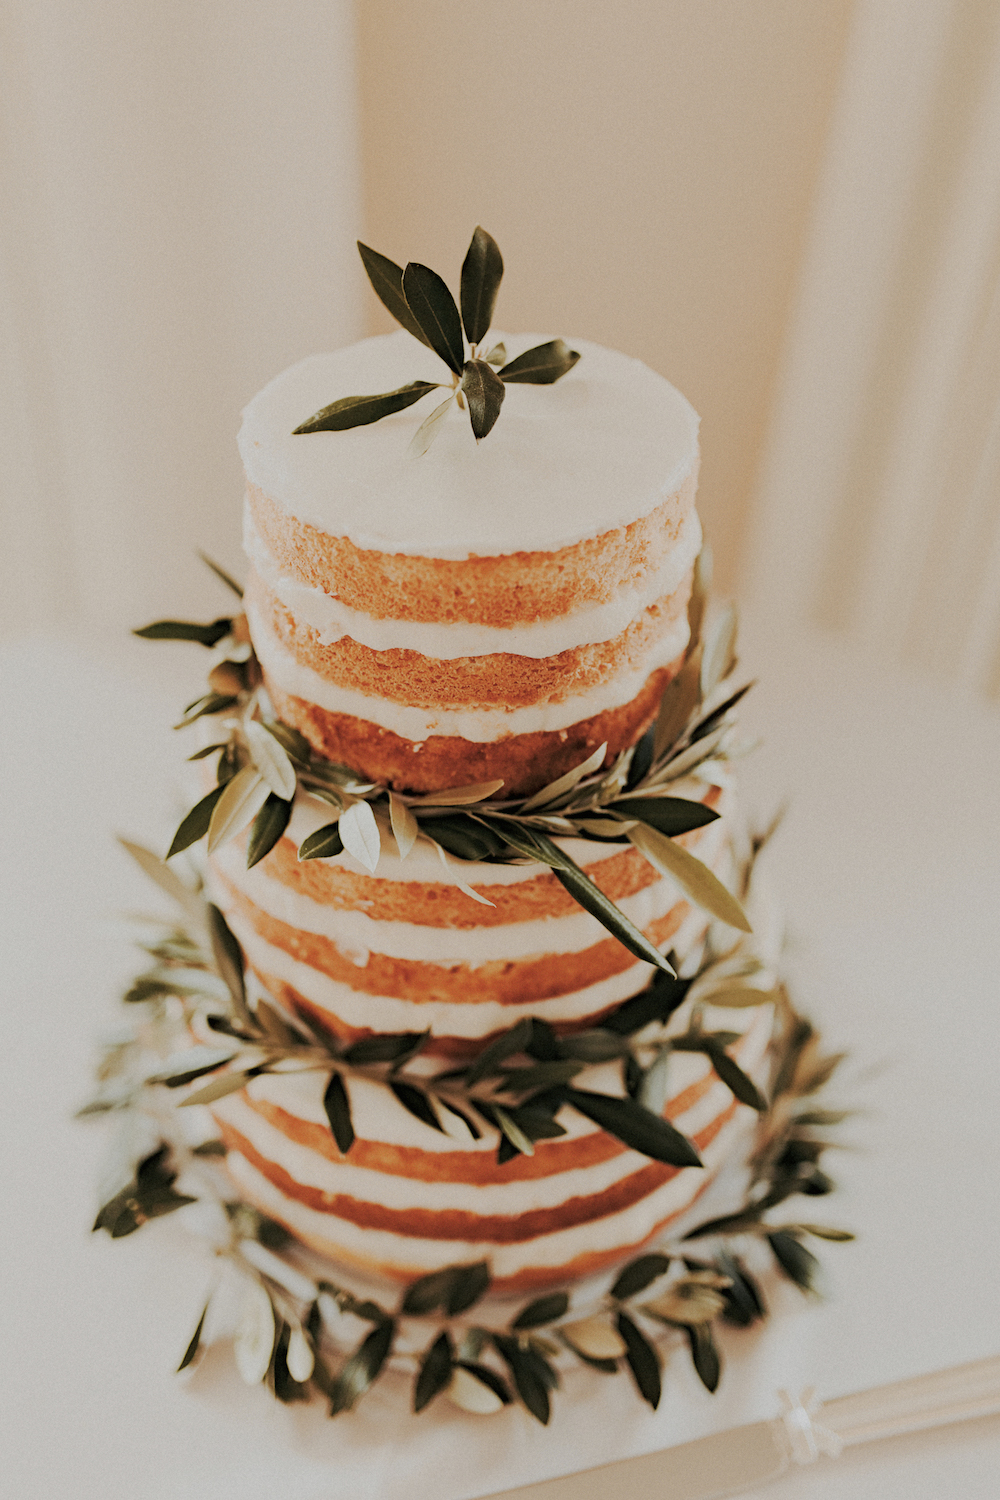 Naked cake with olive branchby San Diego wedding florist, Compass Floral.